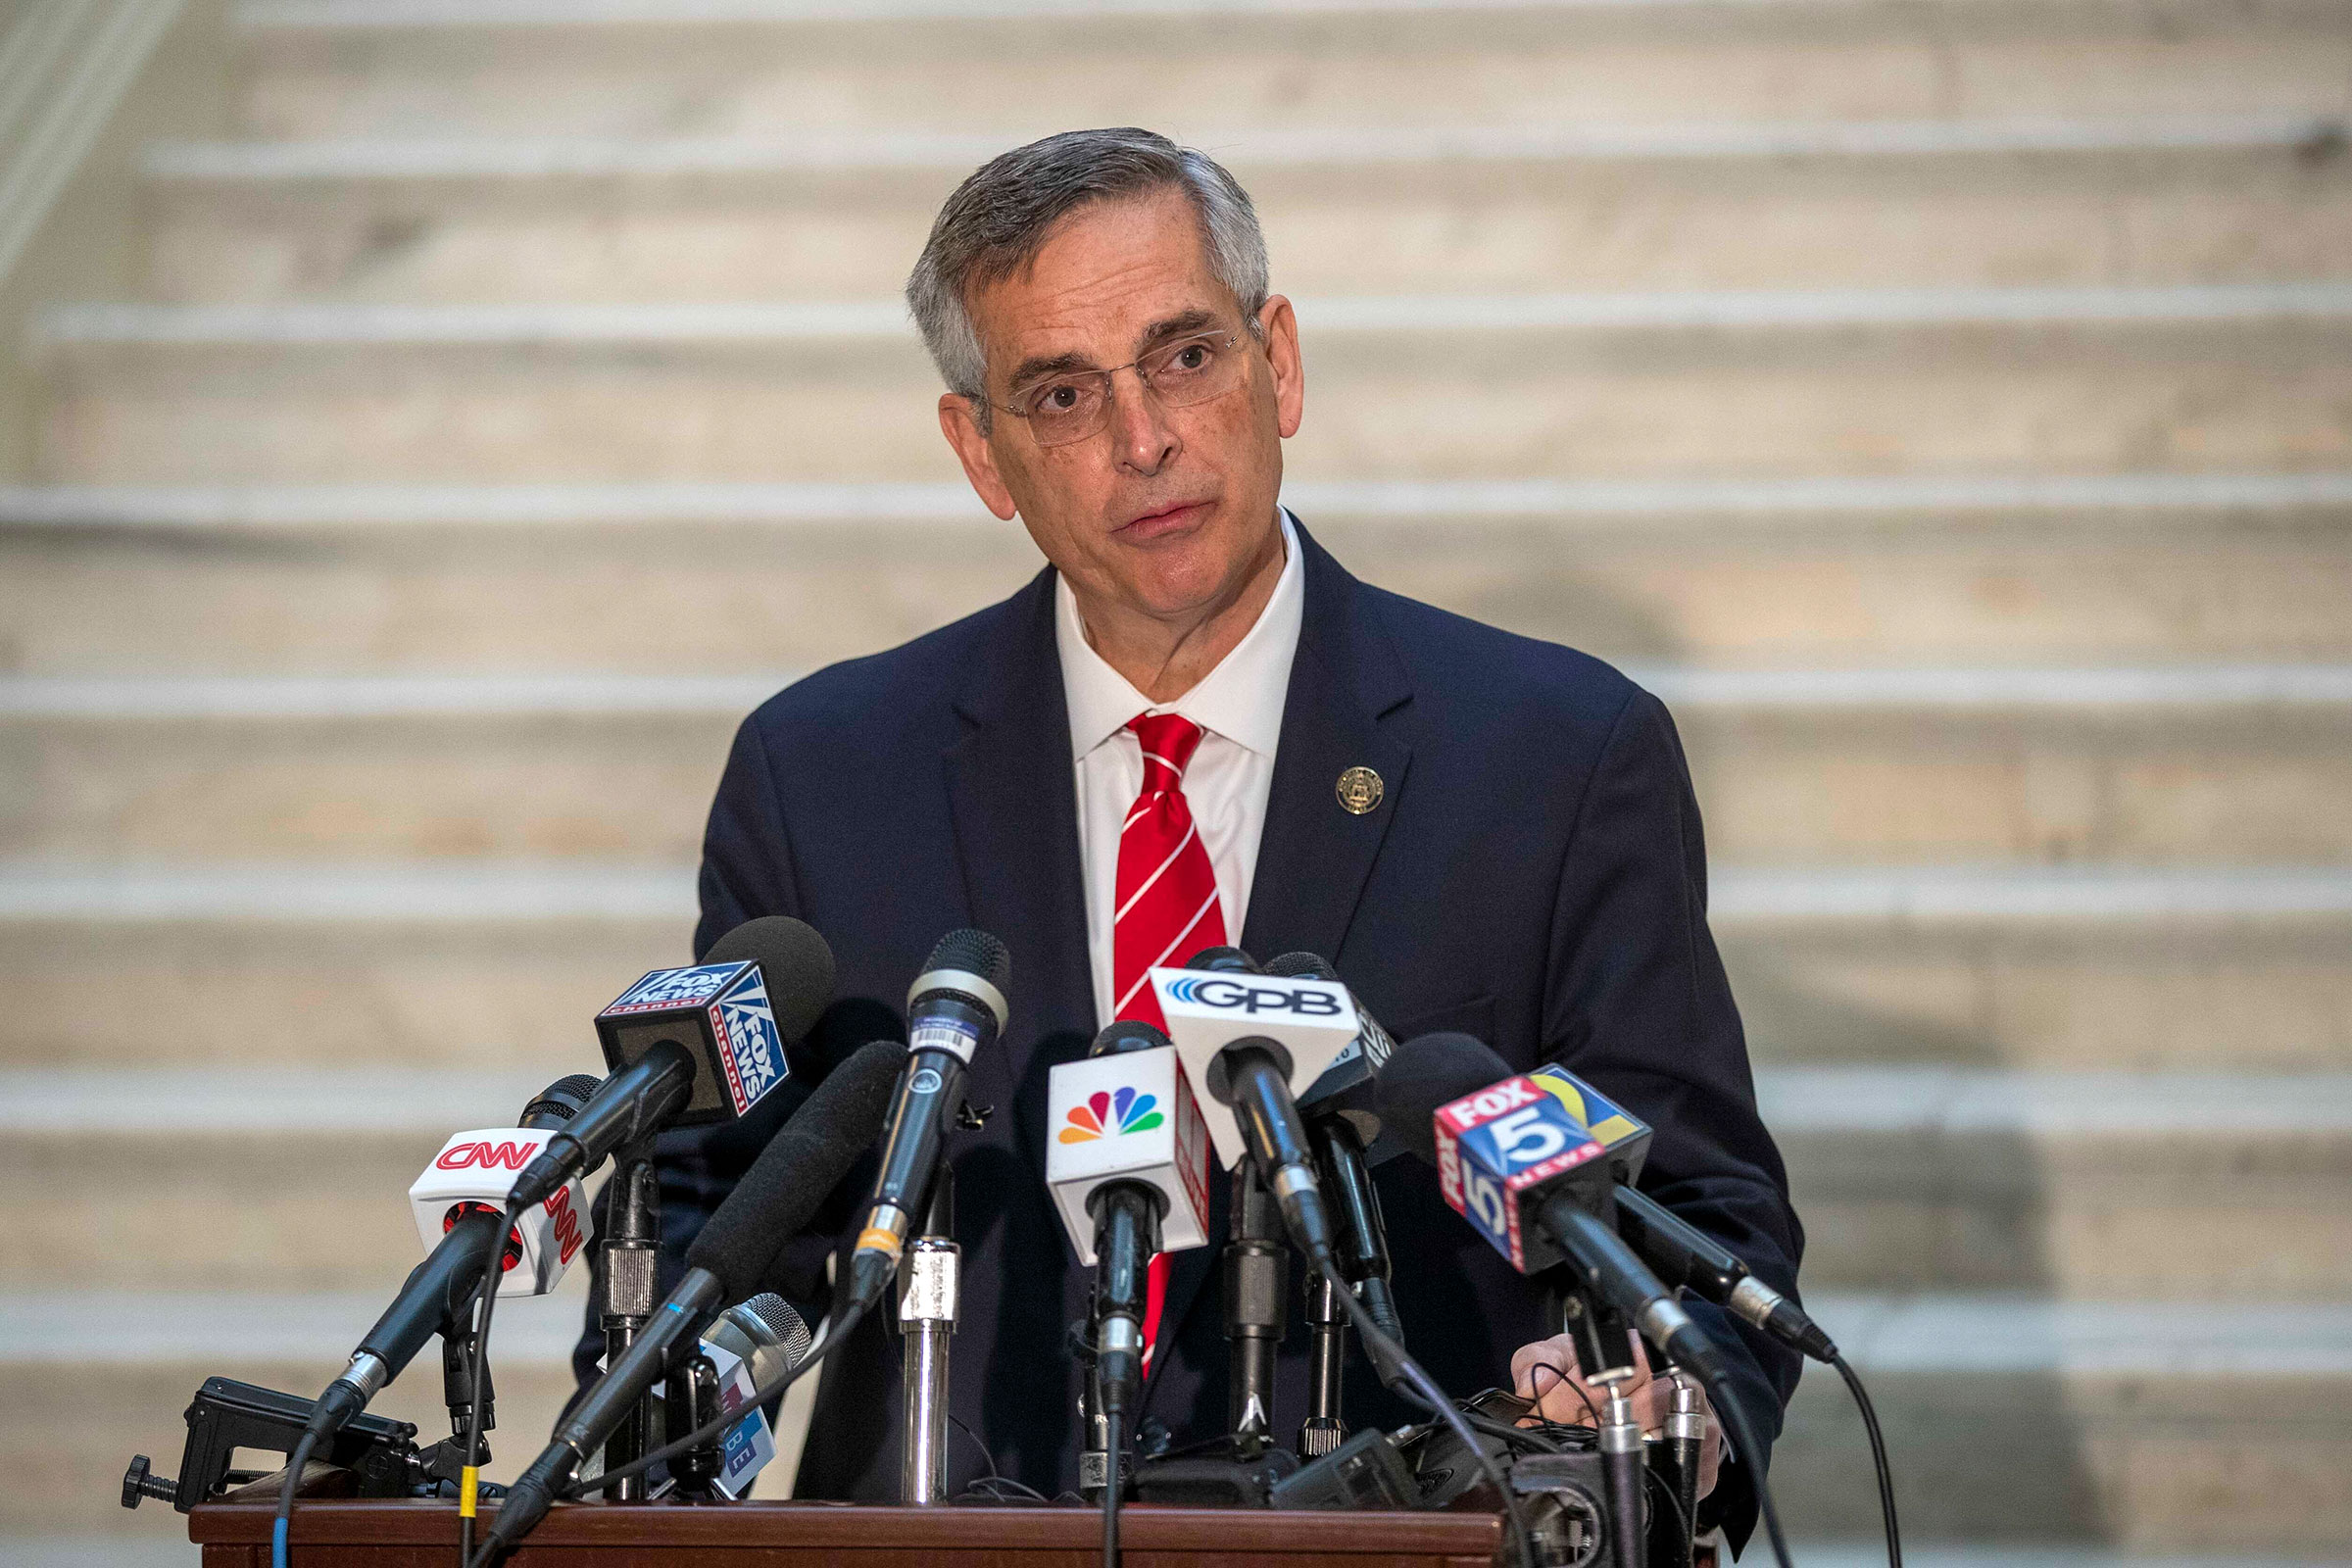 Georgia Secretary of State Brad Raffensperger makes remarks during a press conference in Atlanta, on Wednesday, December 2.